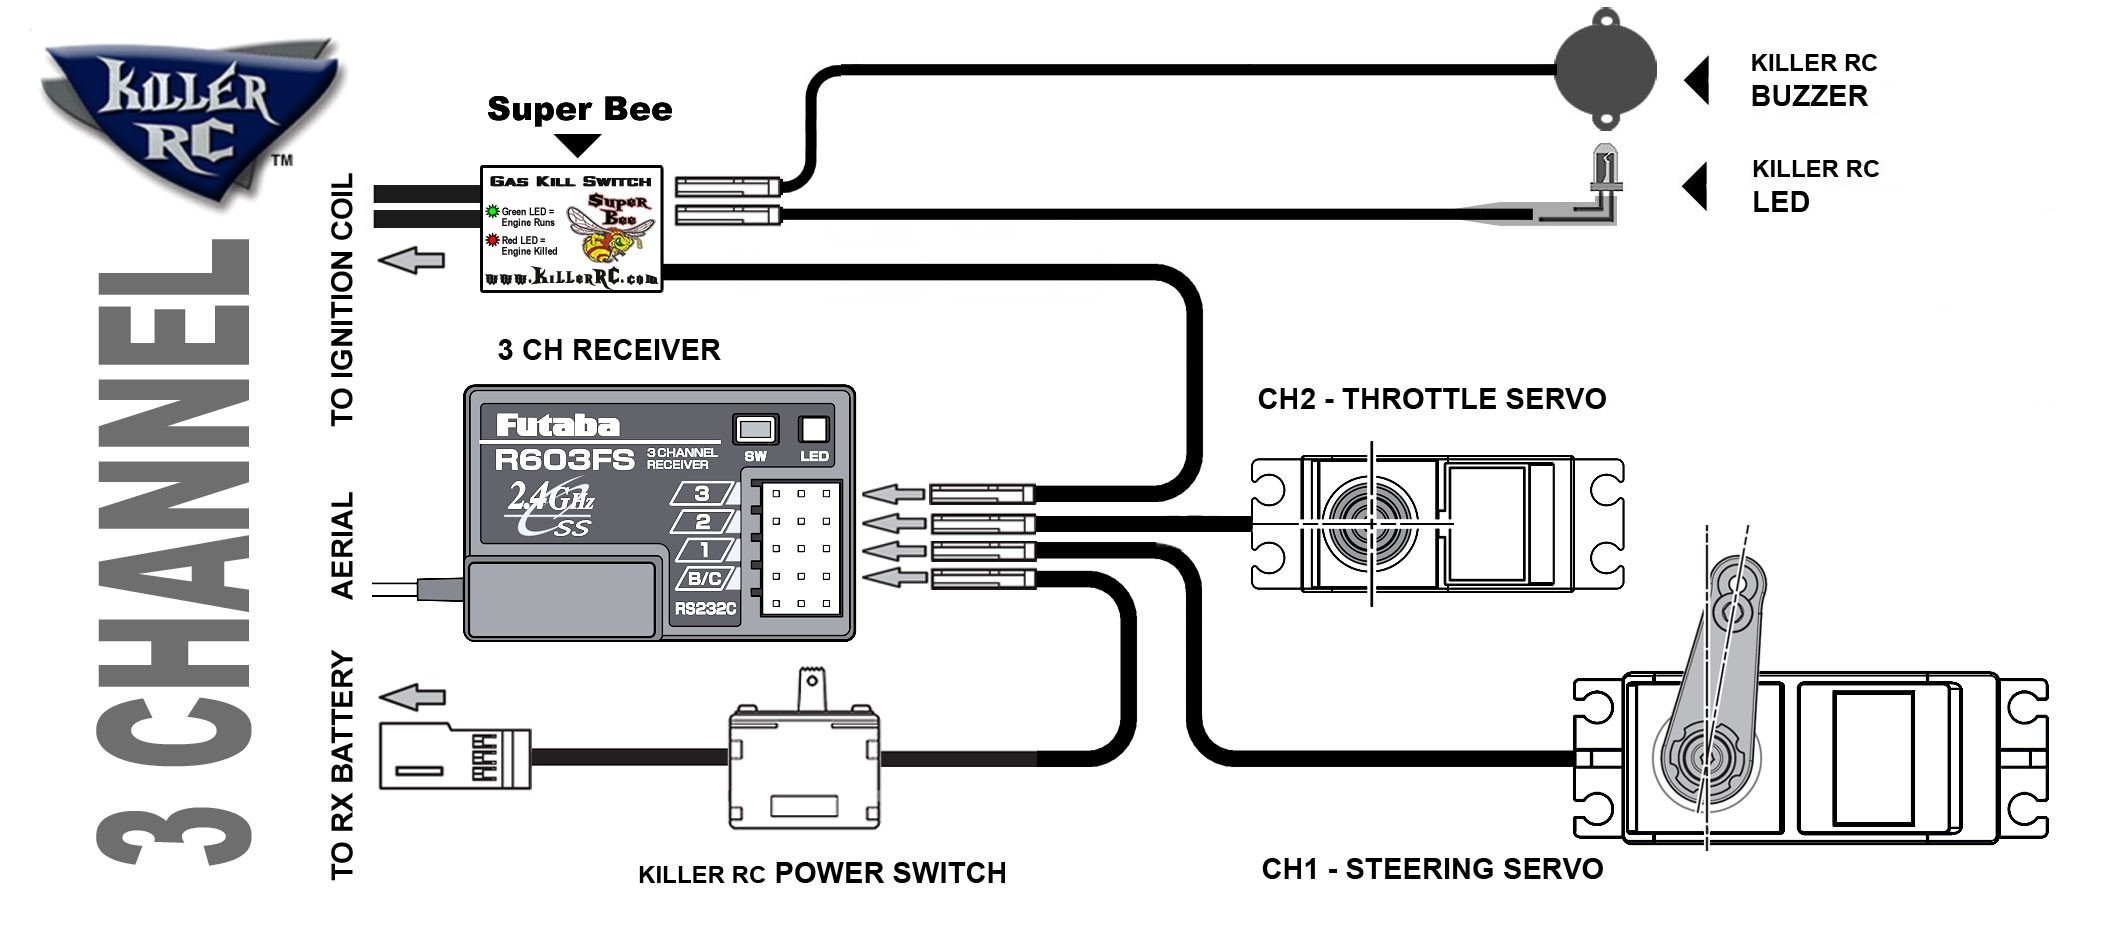 Direct Servo Subwoofer Wiring Diagram from mainetreasurechest.com